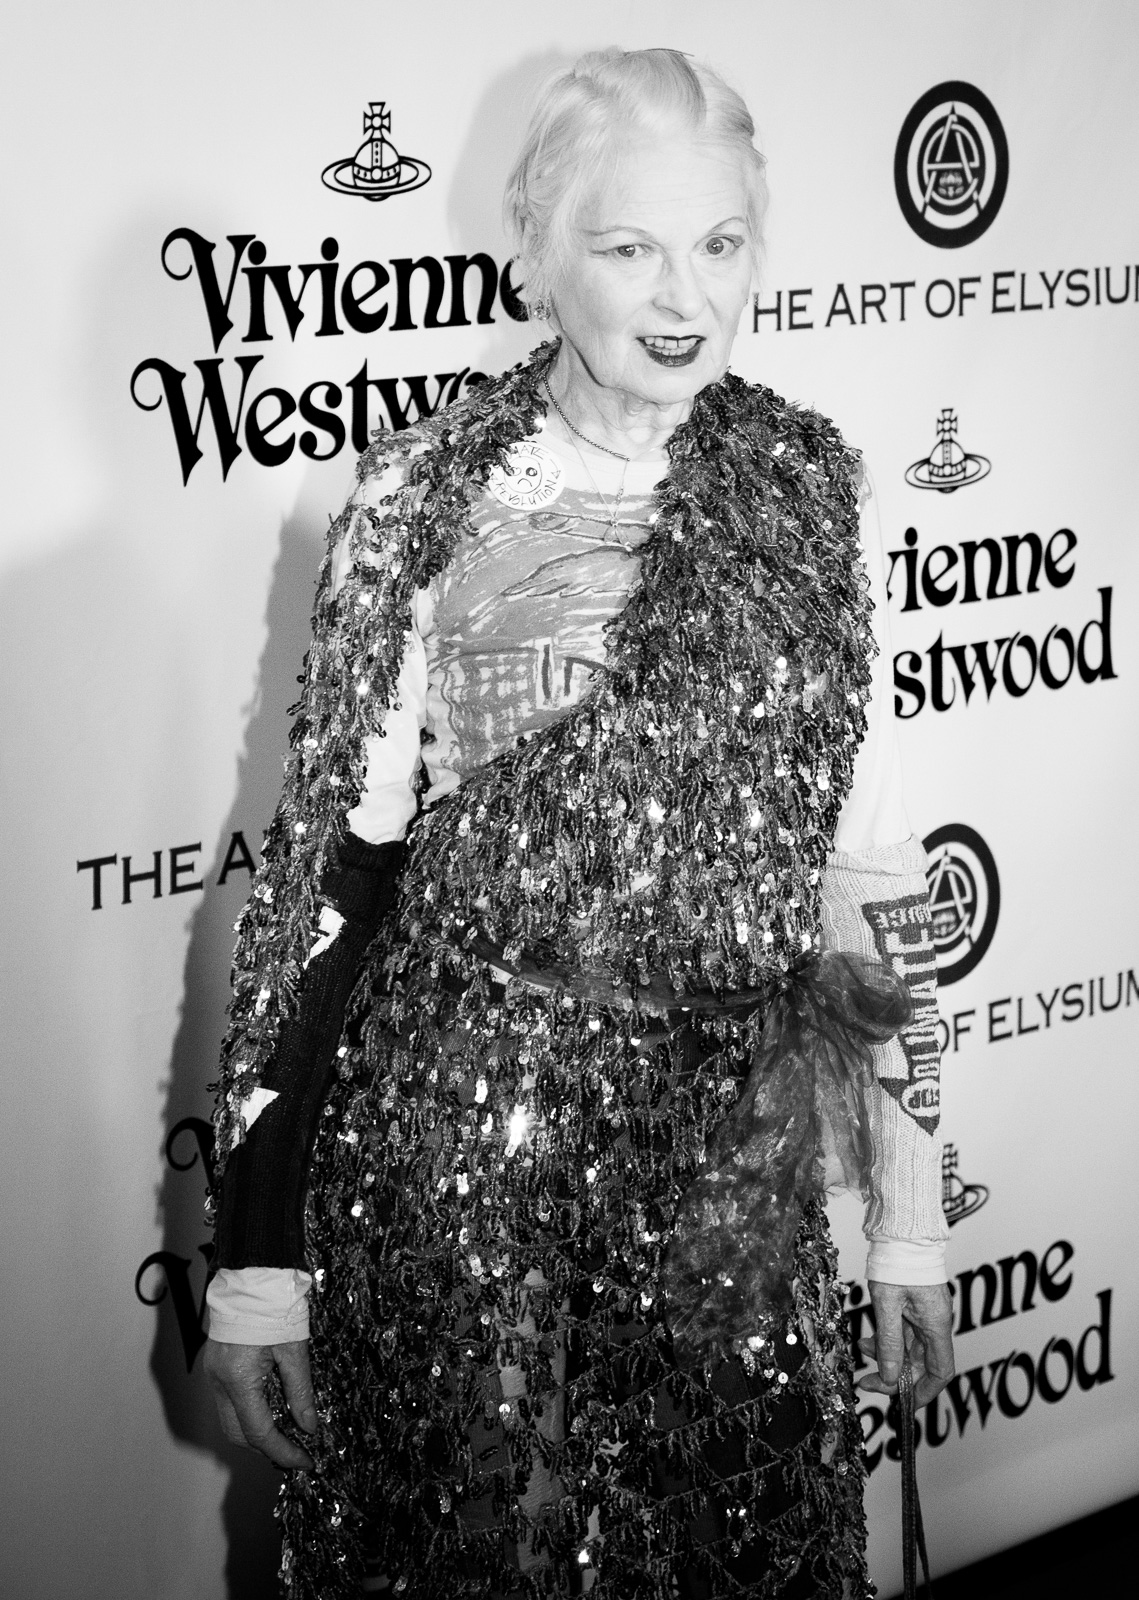 Designer Vivienne Westwood attends The Art of Elysium 2016 HEAVEN Gala presented by Vivienne Westwood & Andreas Kronthaler at 3LABS on January 9, 2016 in Culver City, California.